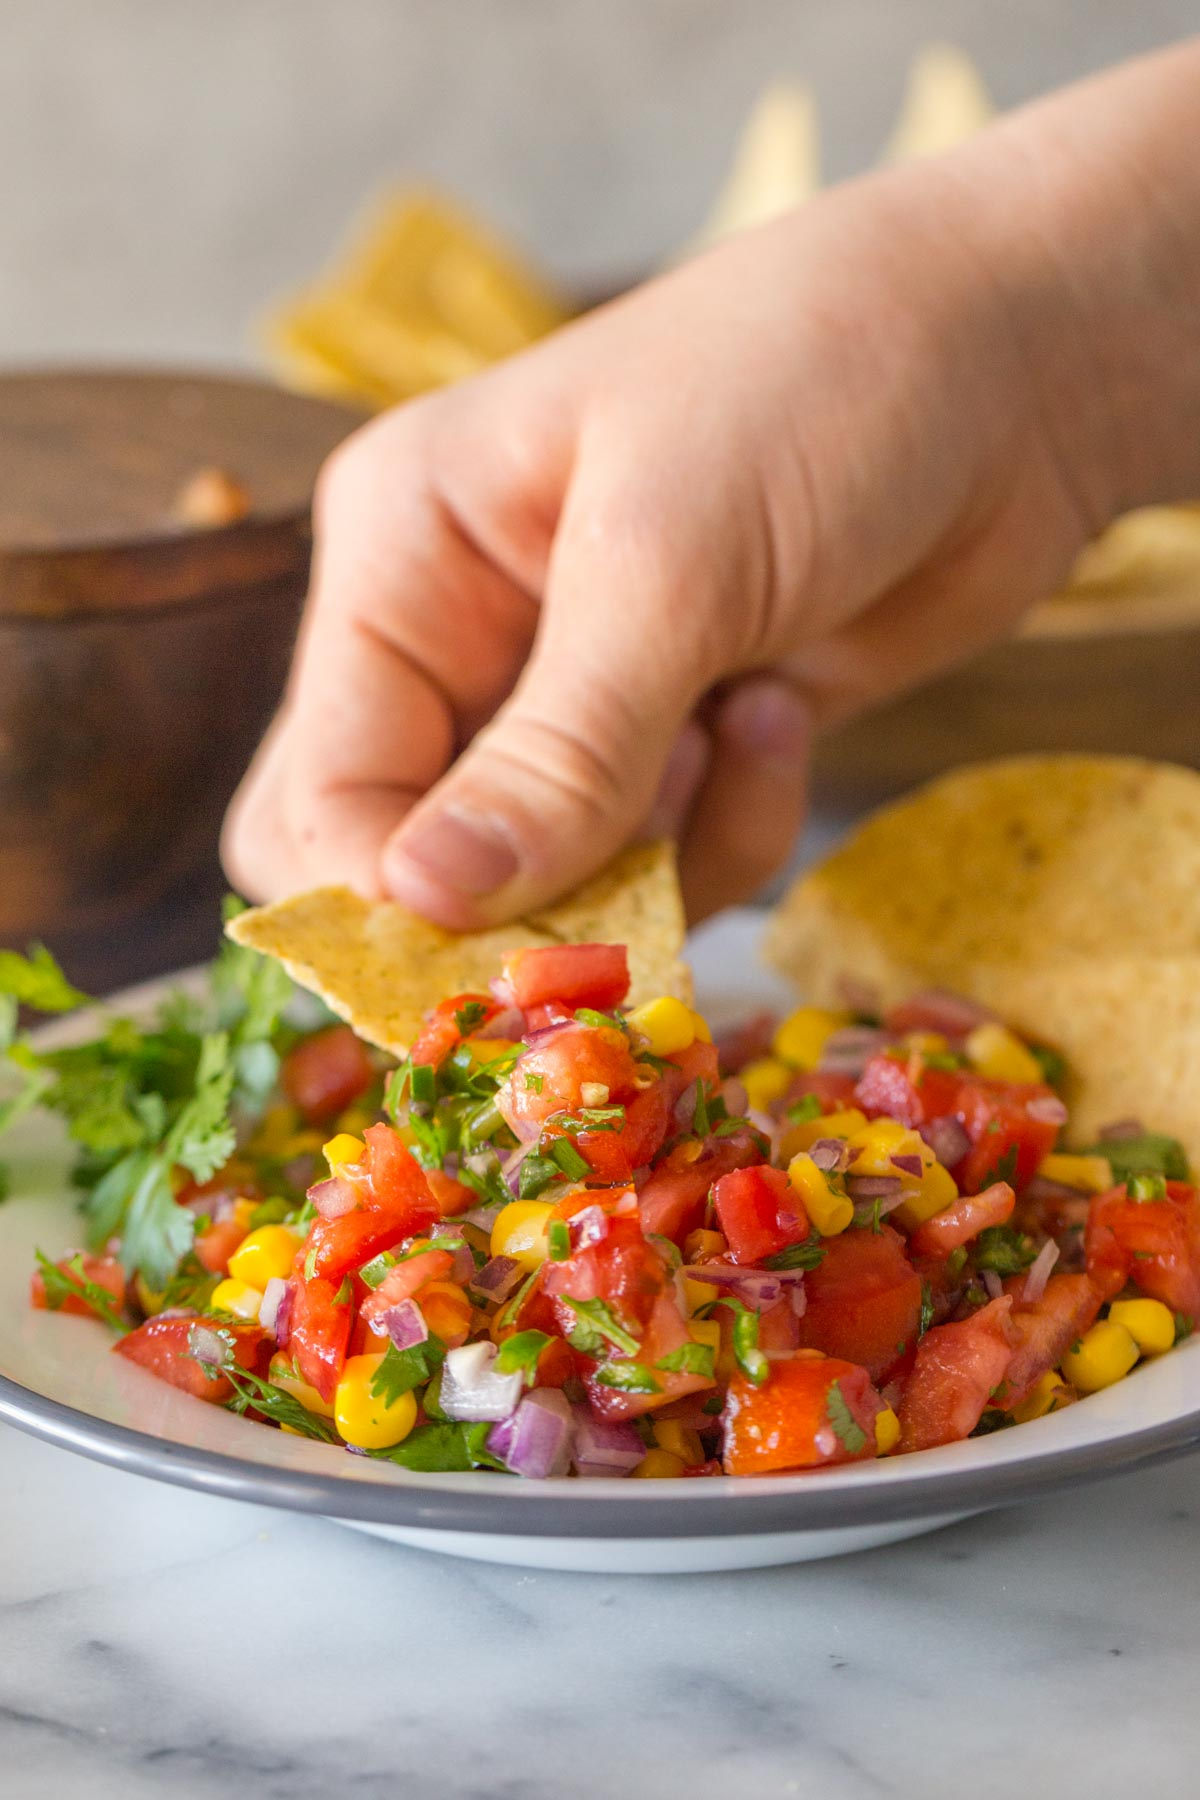 Chip scooping Homemade Pico de Gallo.